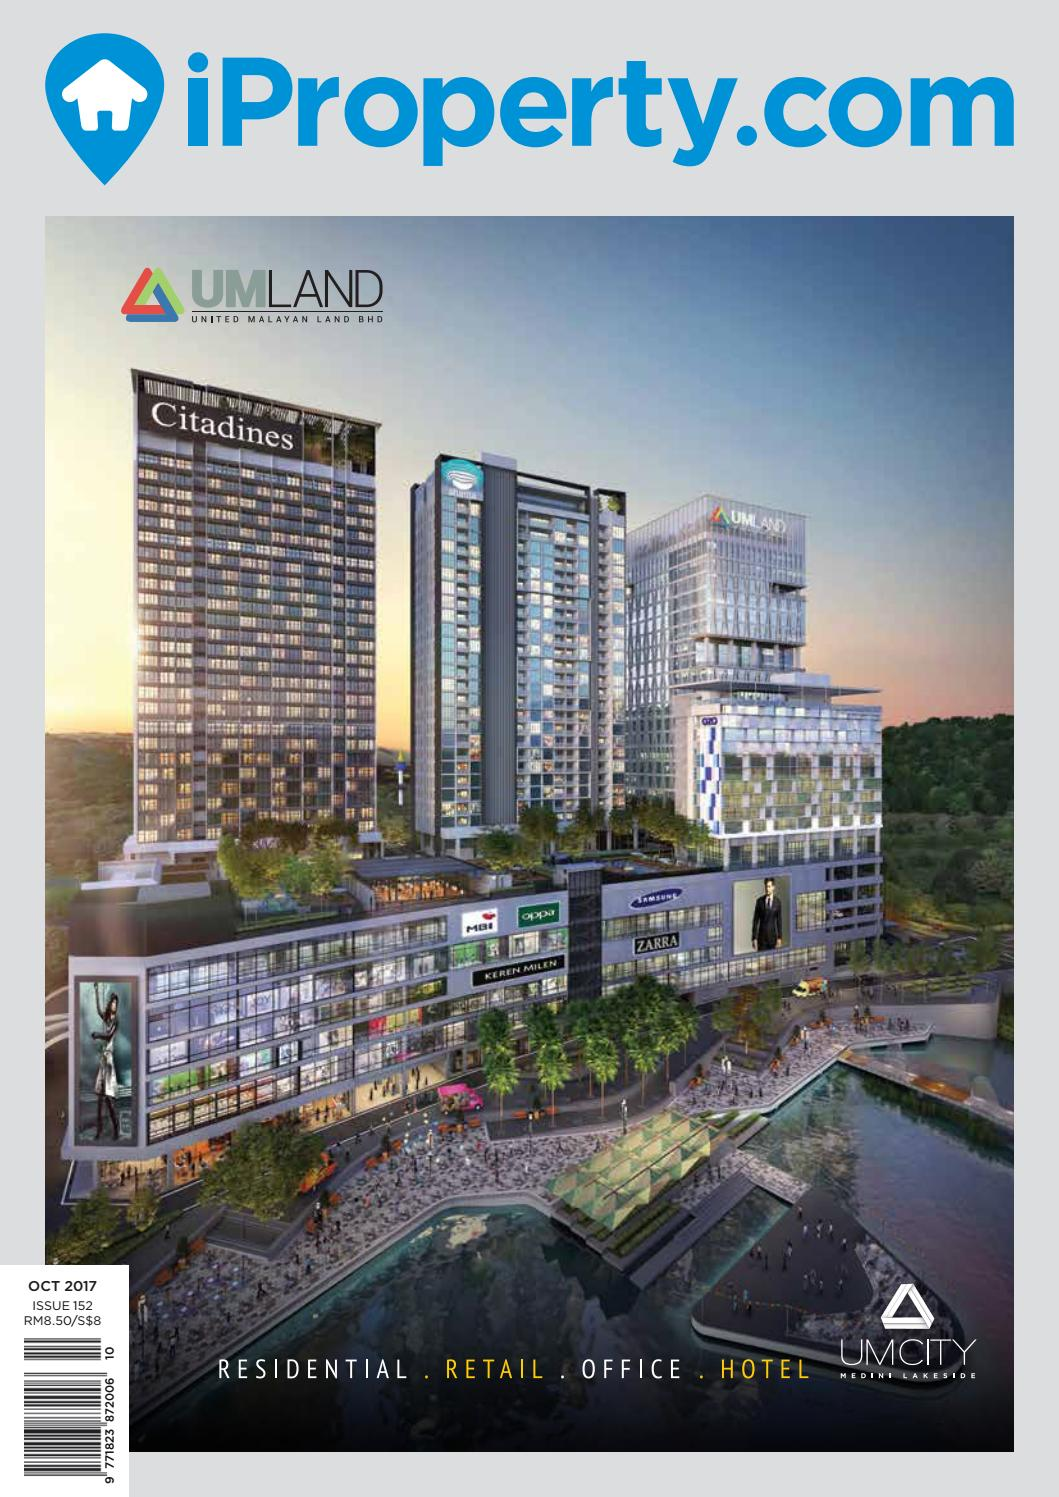 iProperty com Issue 152 (Oct 2017) by iproperty com - issuu